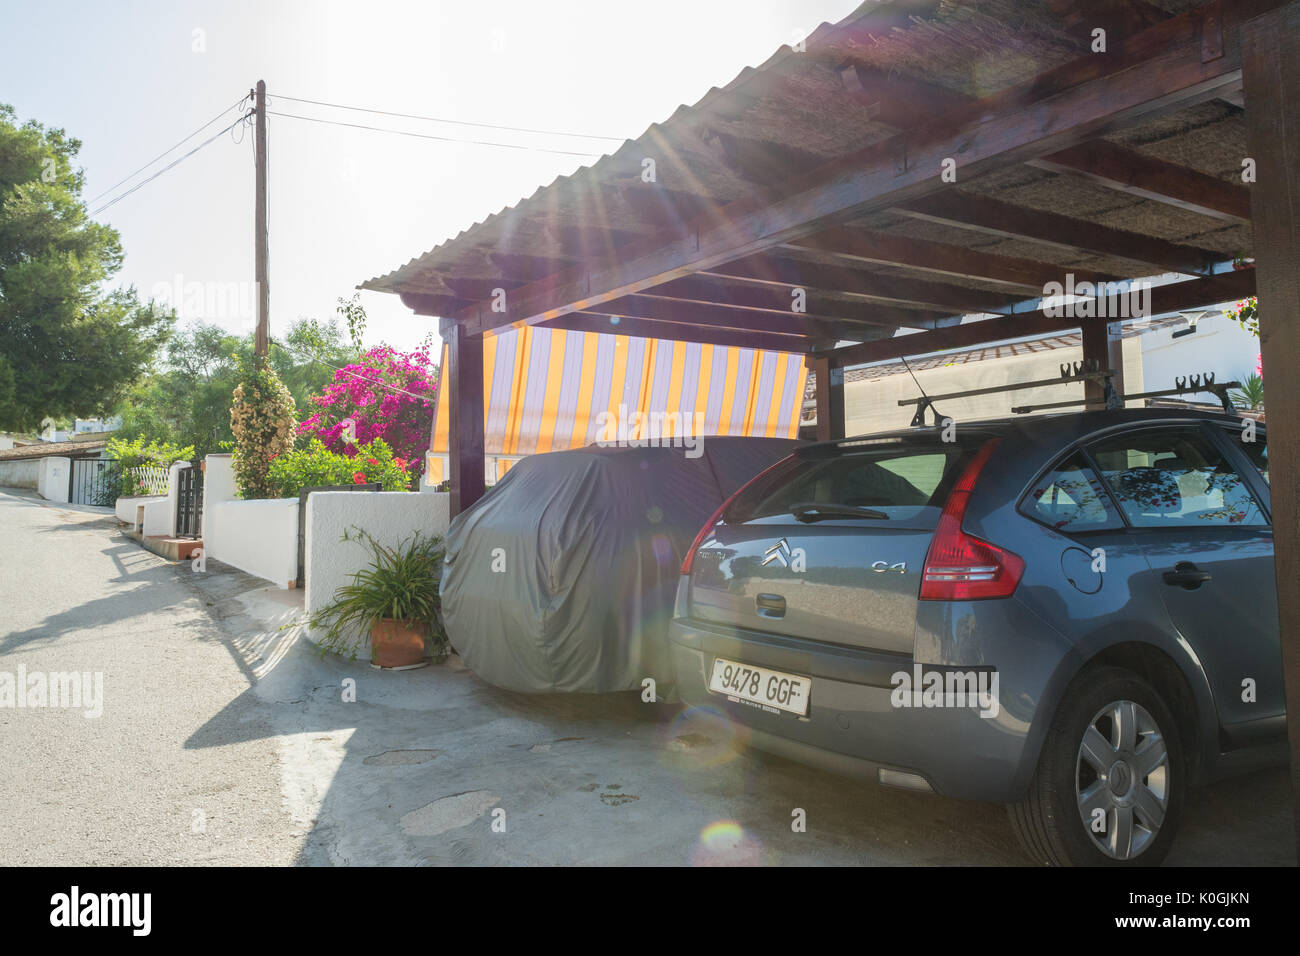 carport with sun shade protection in Spain - Stock Image